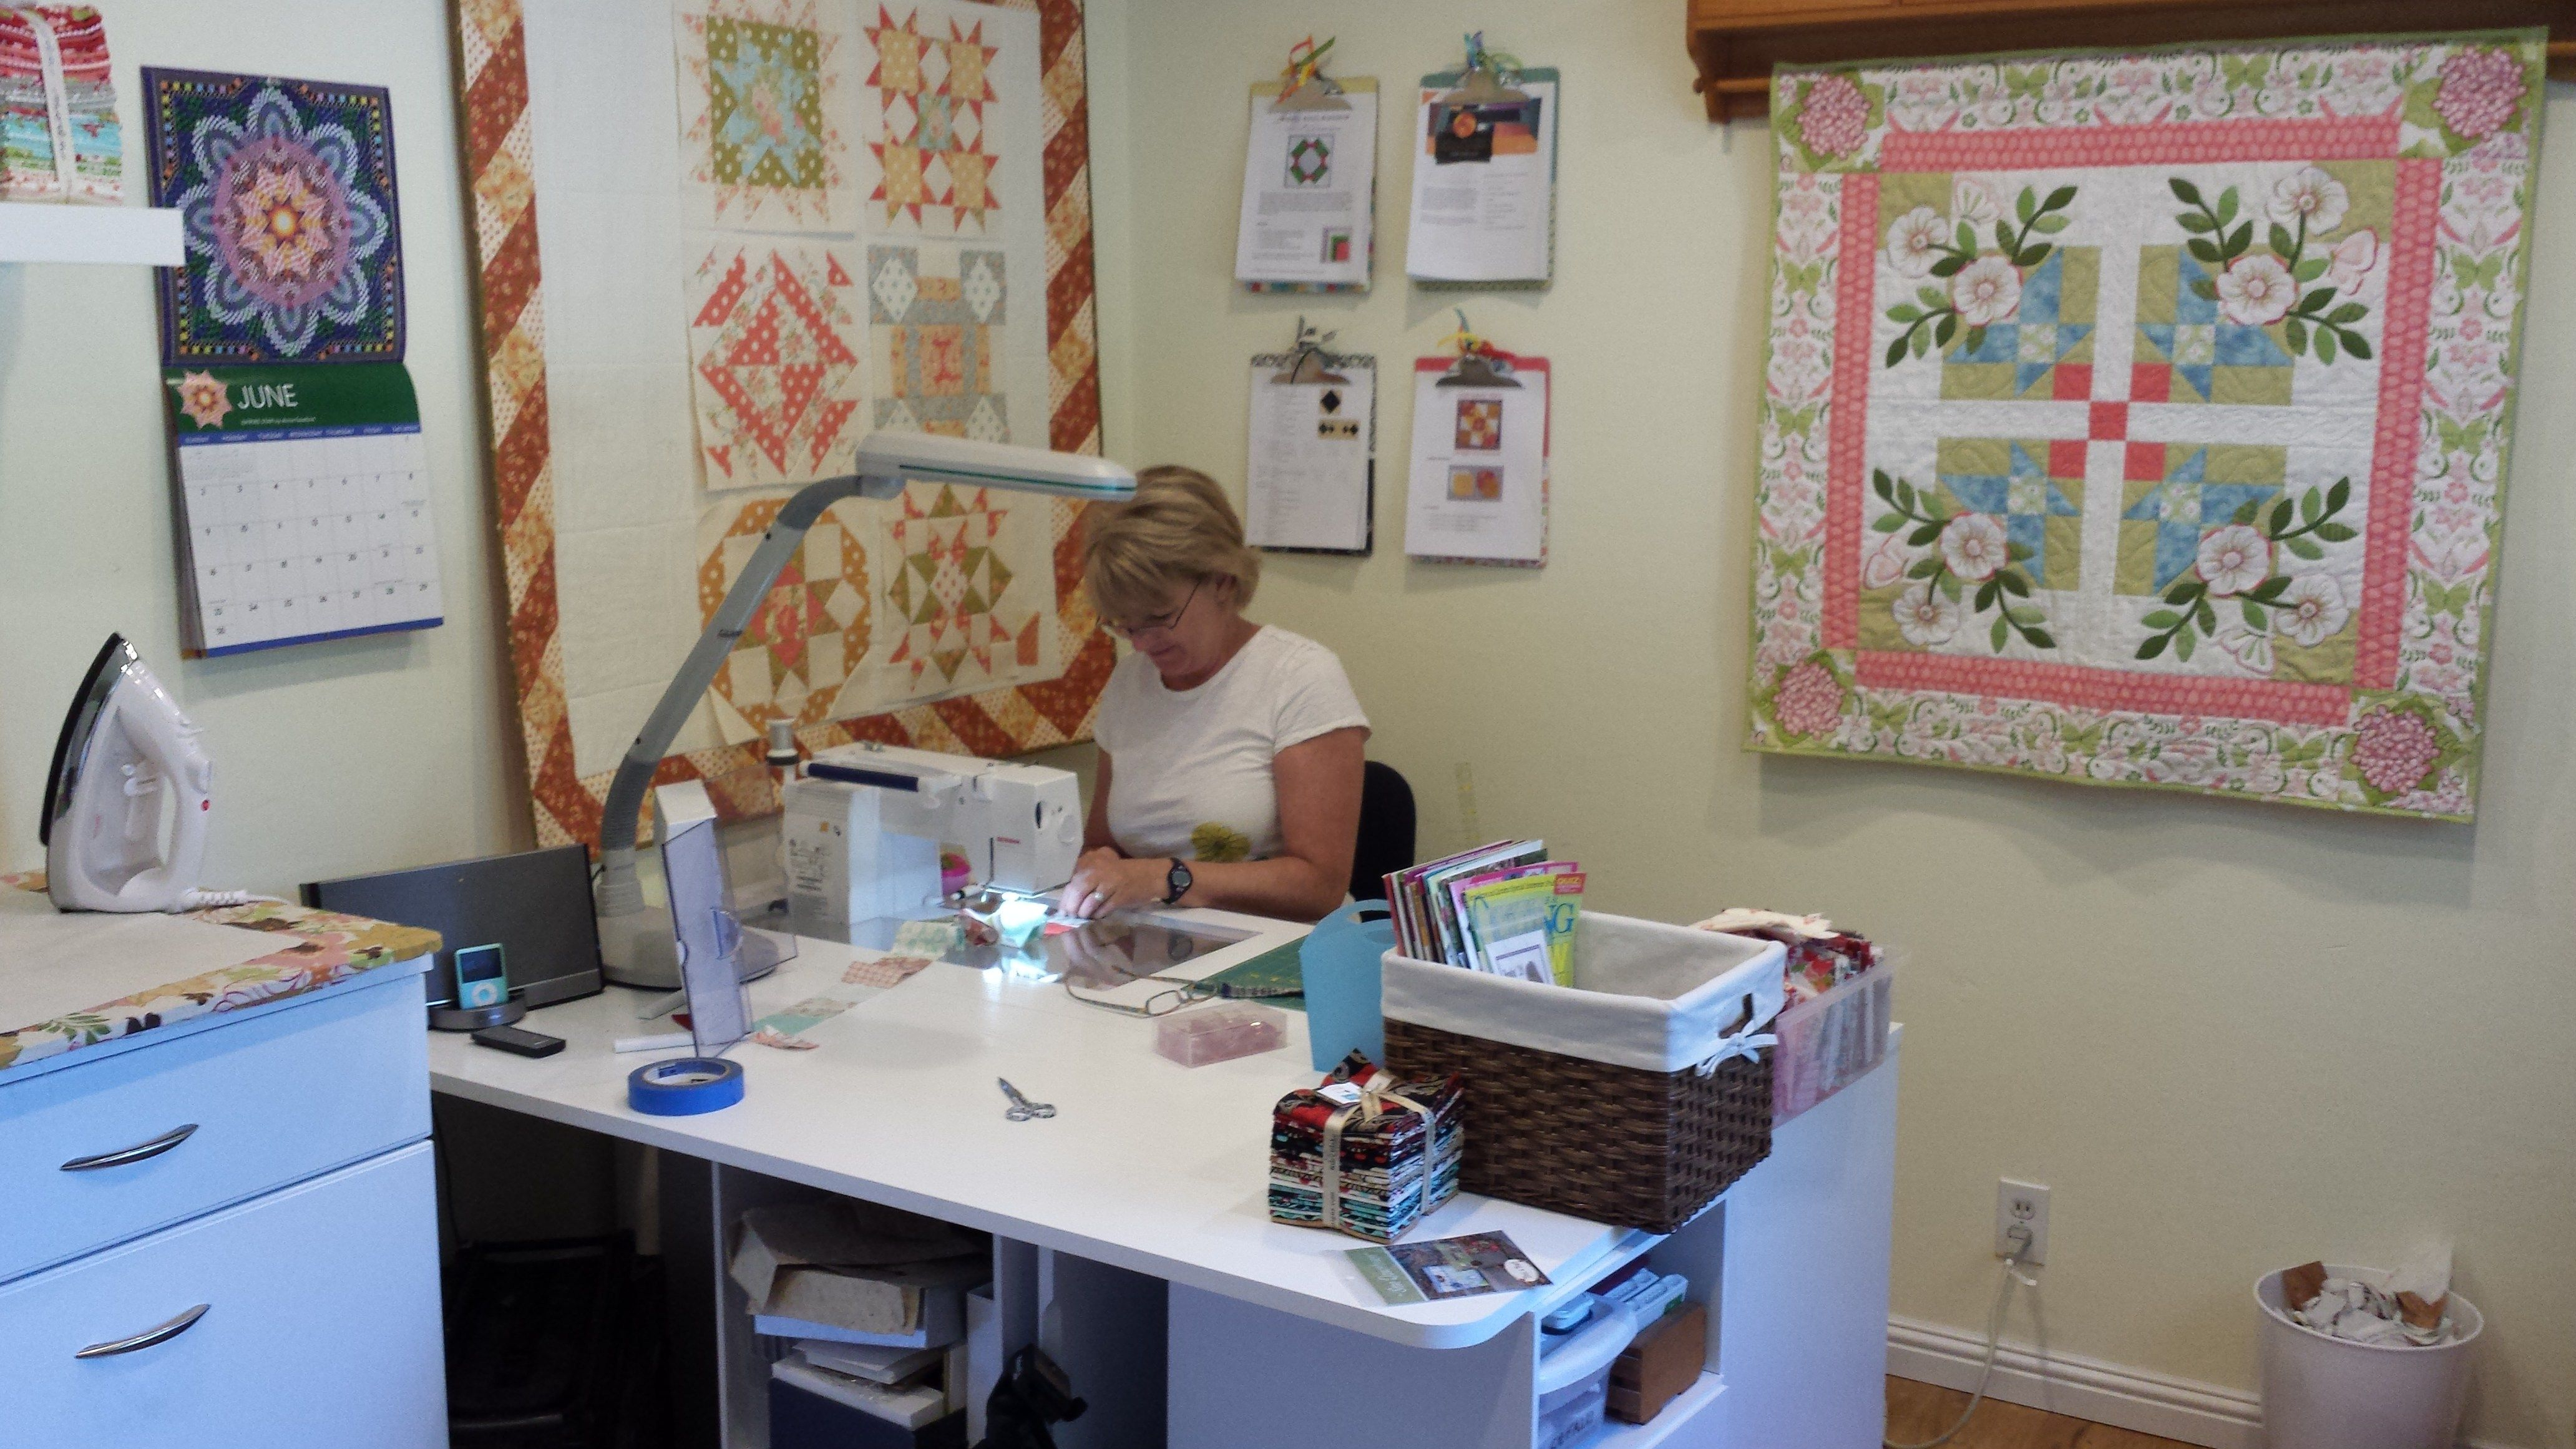 Sewing Room Designs: My Sewing Room Tour - The Crafty Quilter